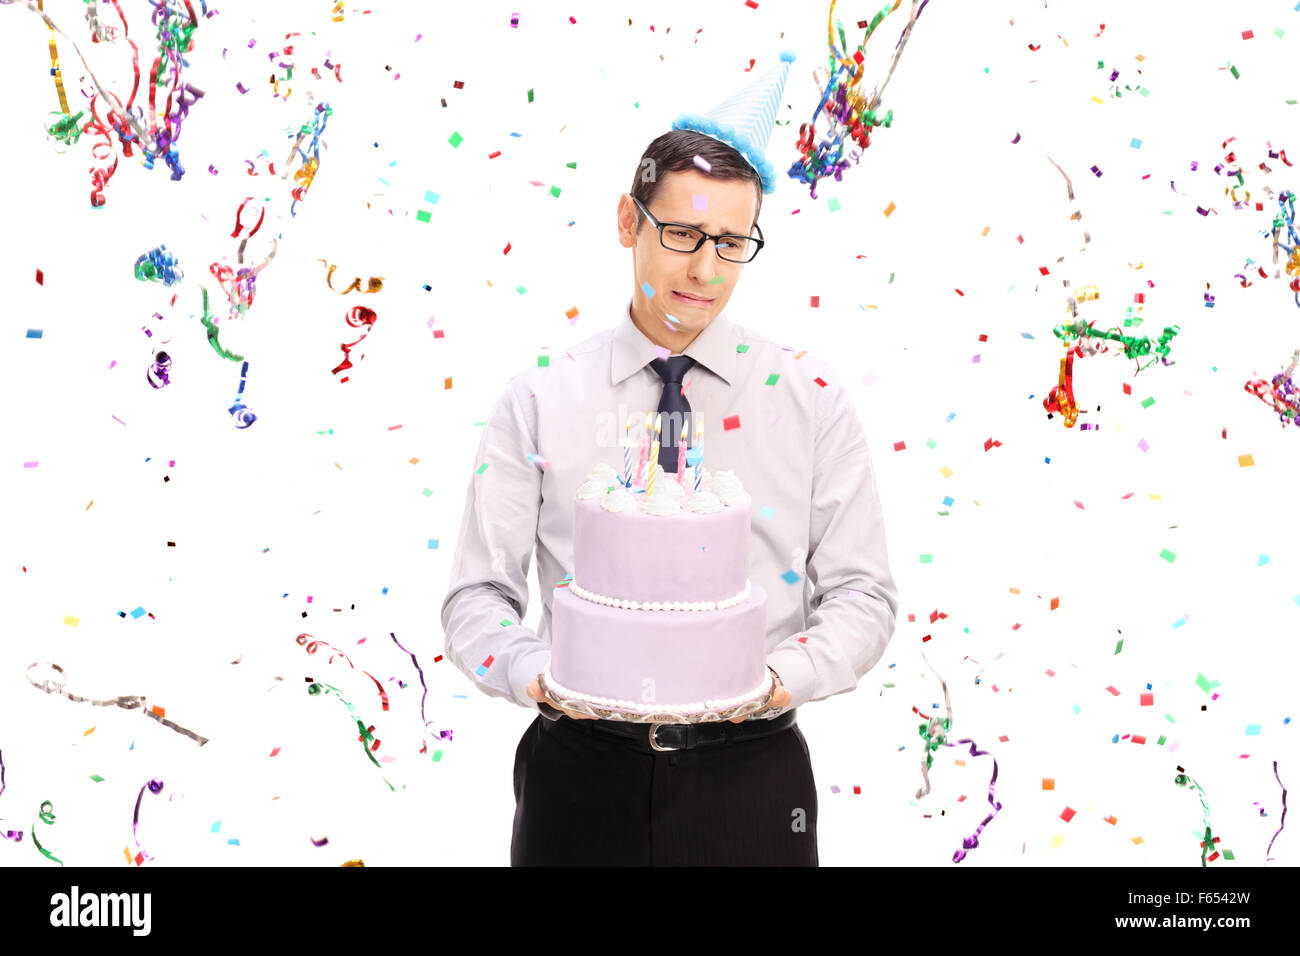 Sad young man holding a birthday cake and crying with confetti streamers flying around him isolated on white background - Stock Image